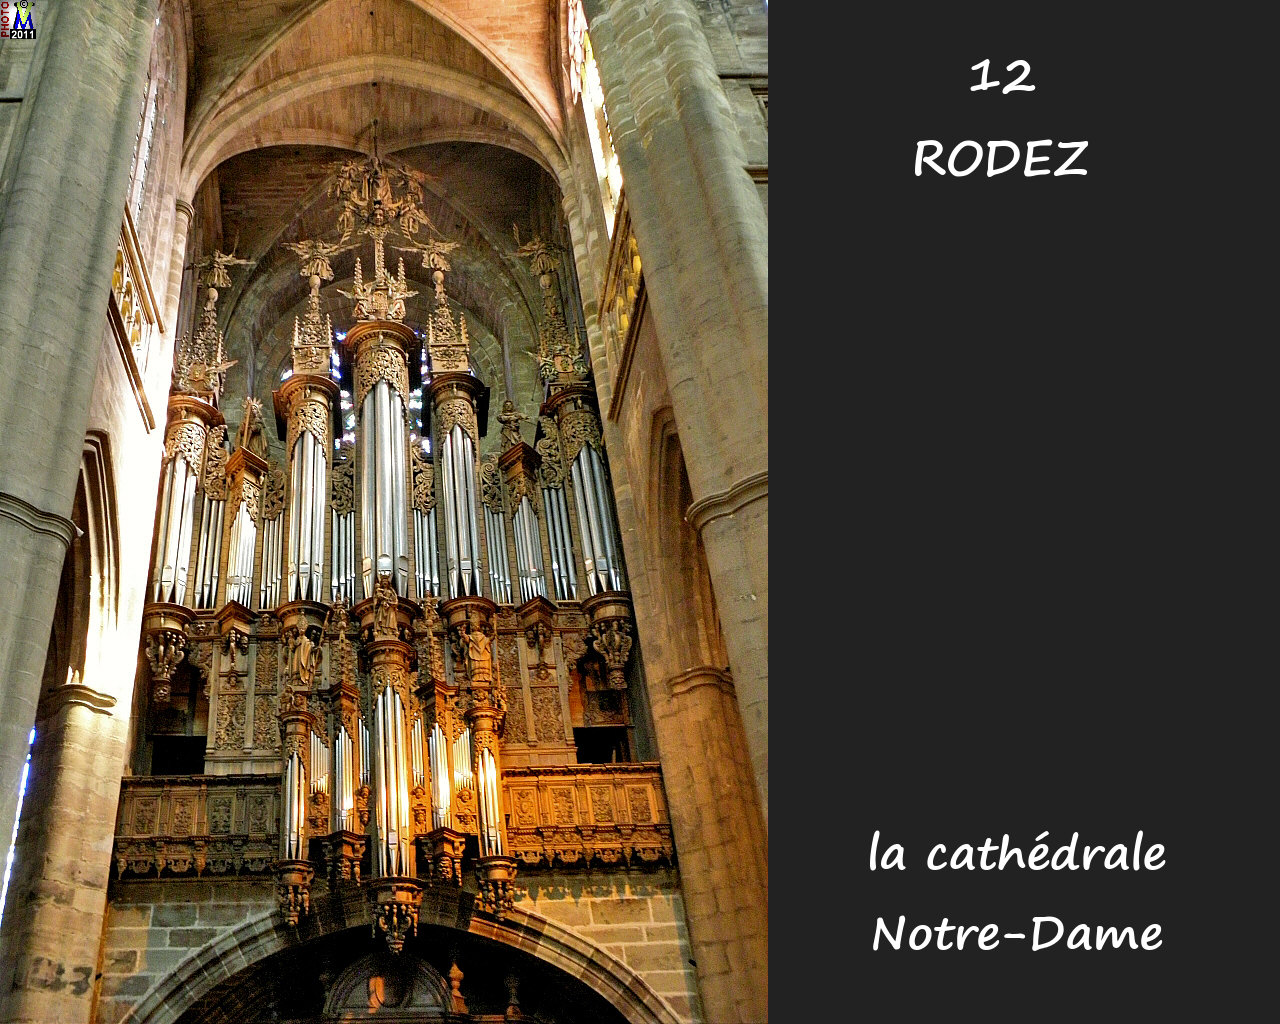 12RODEZ_cathedrale_210.jpg